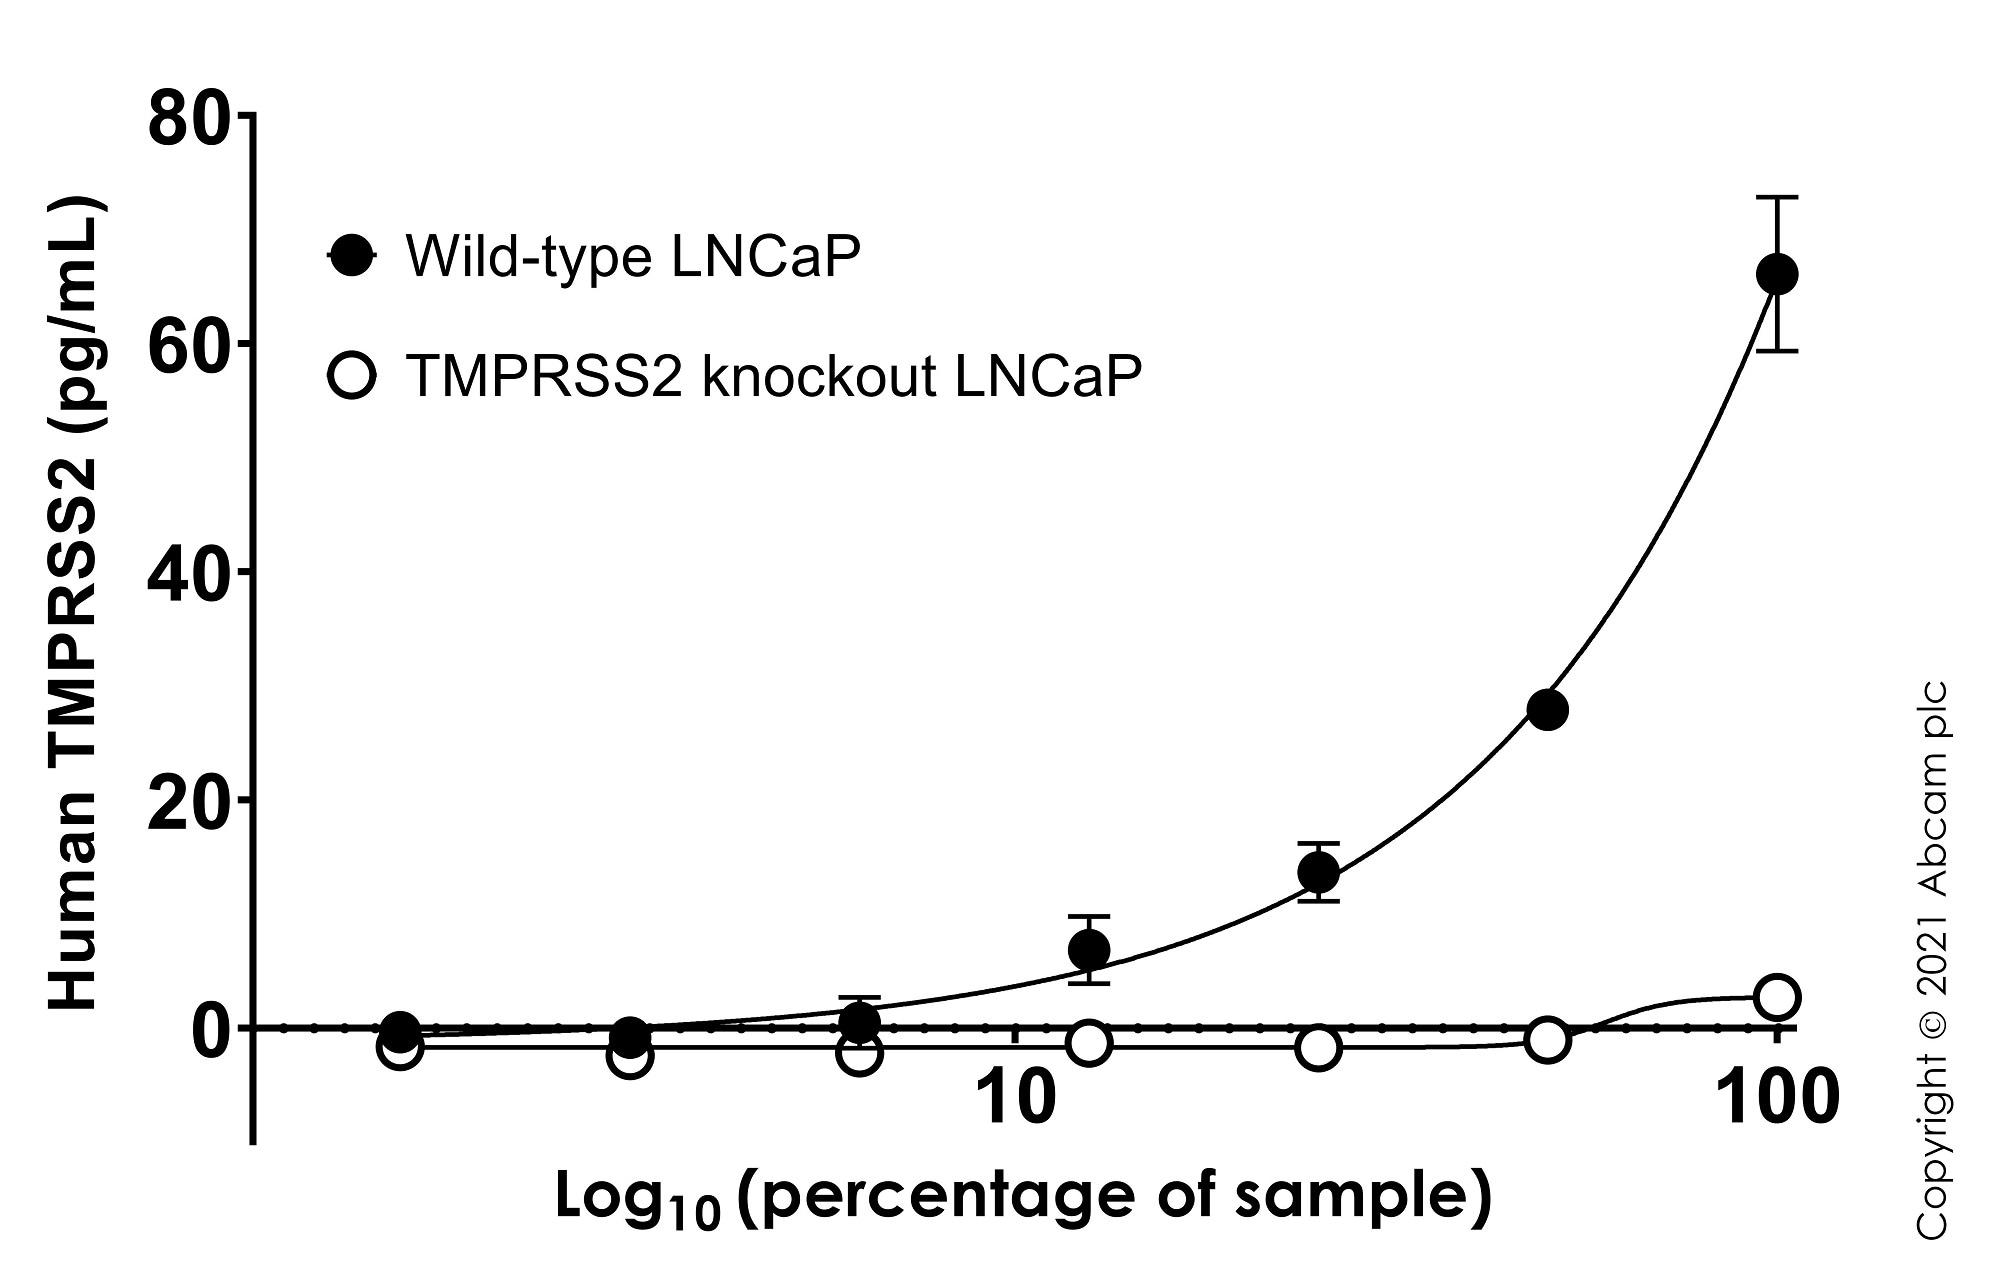 Human TMPRSS2 concentration was interpolated from the TMPRSS2 standard curve.